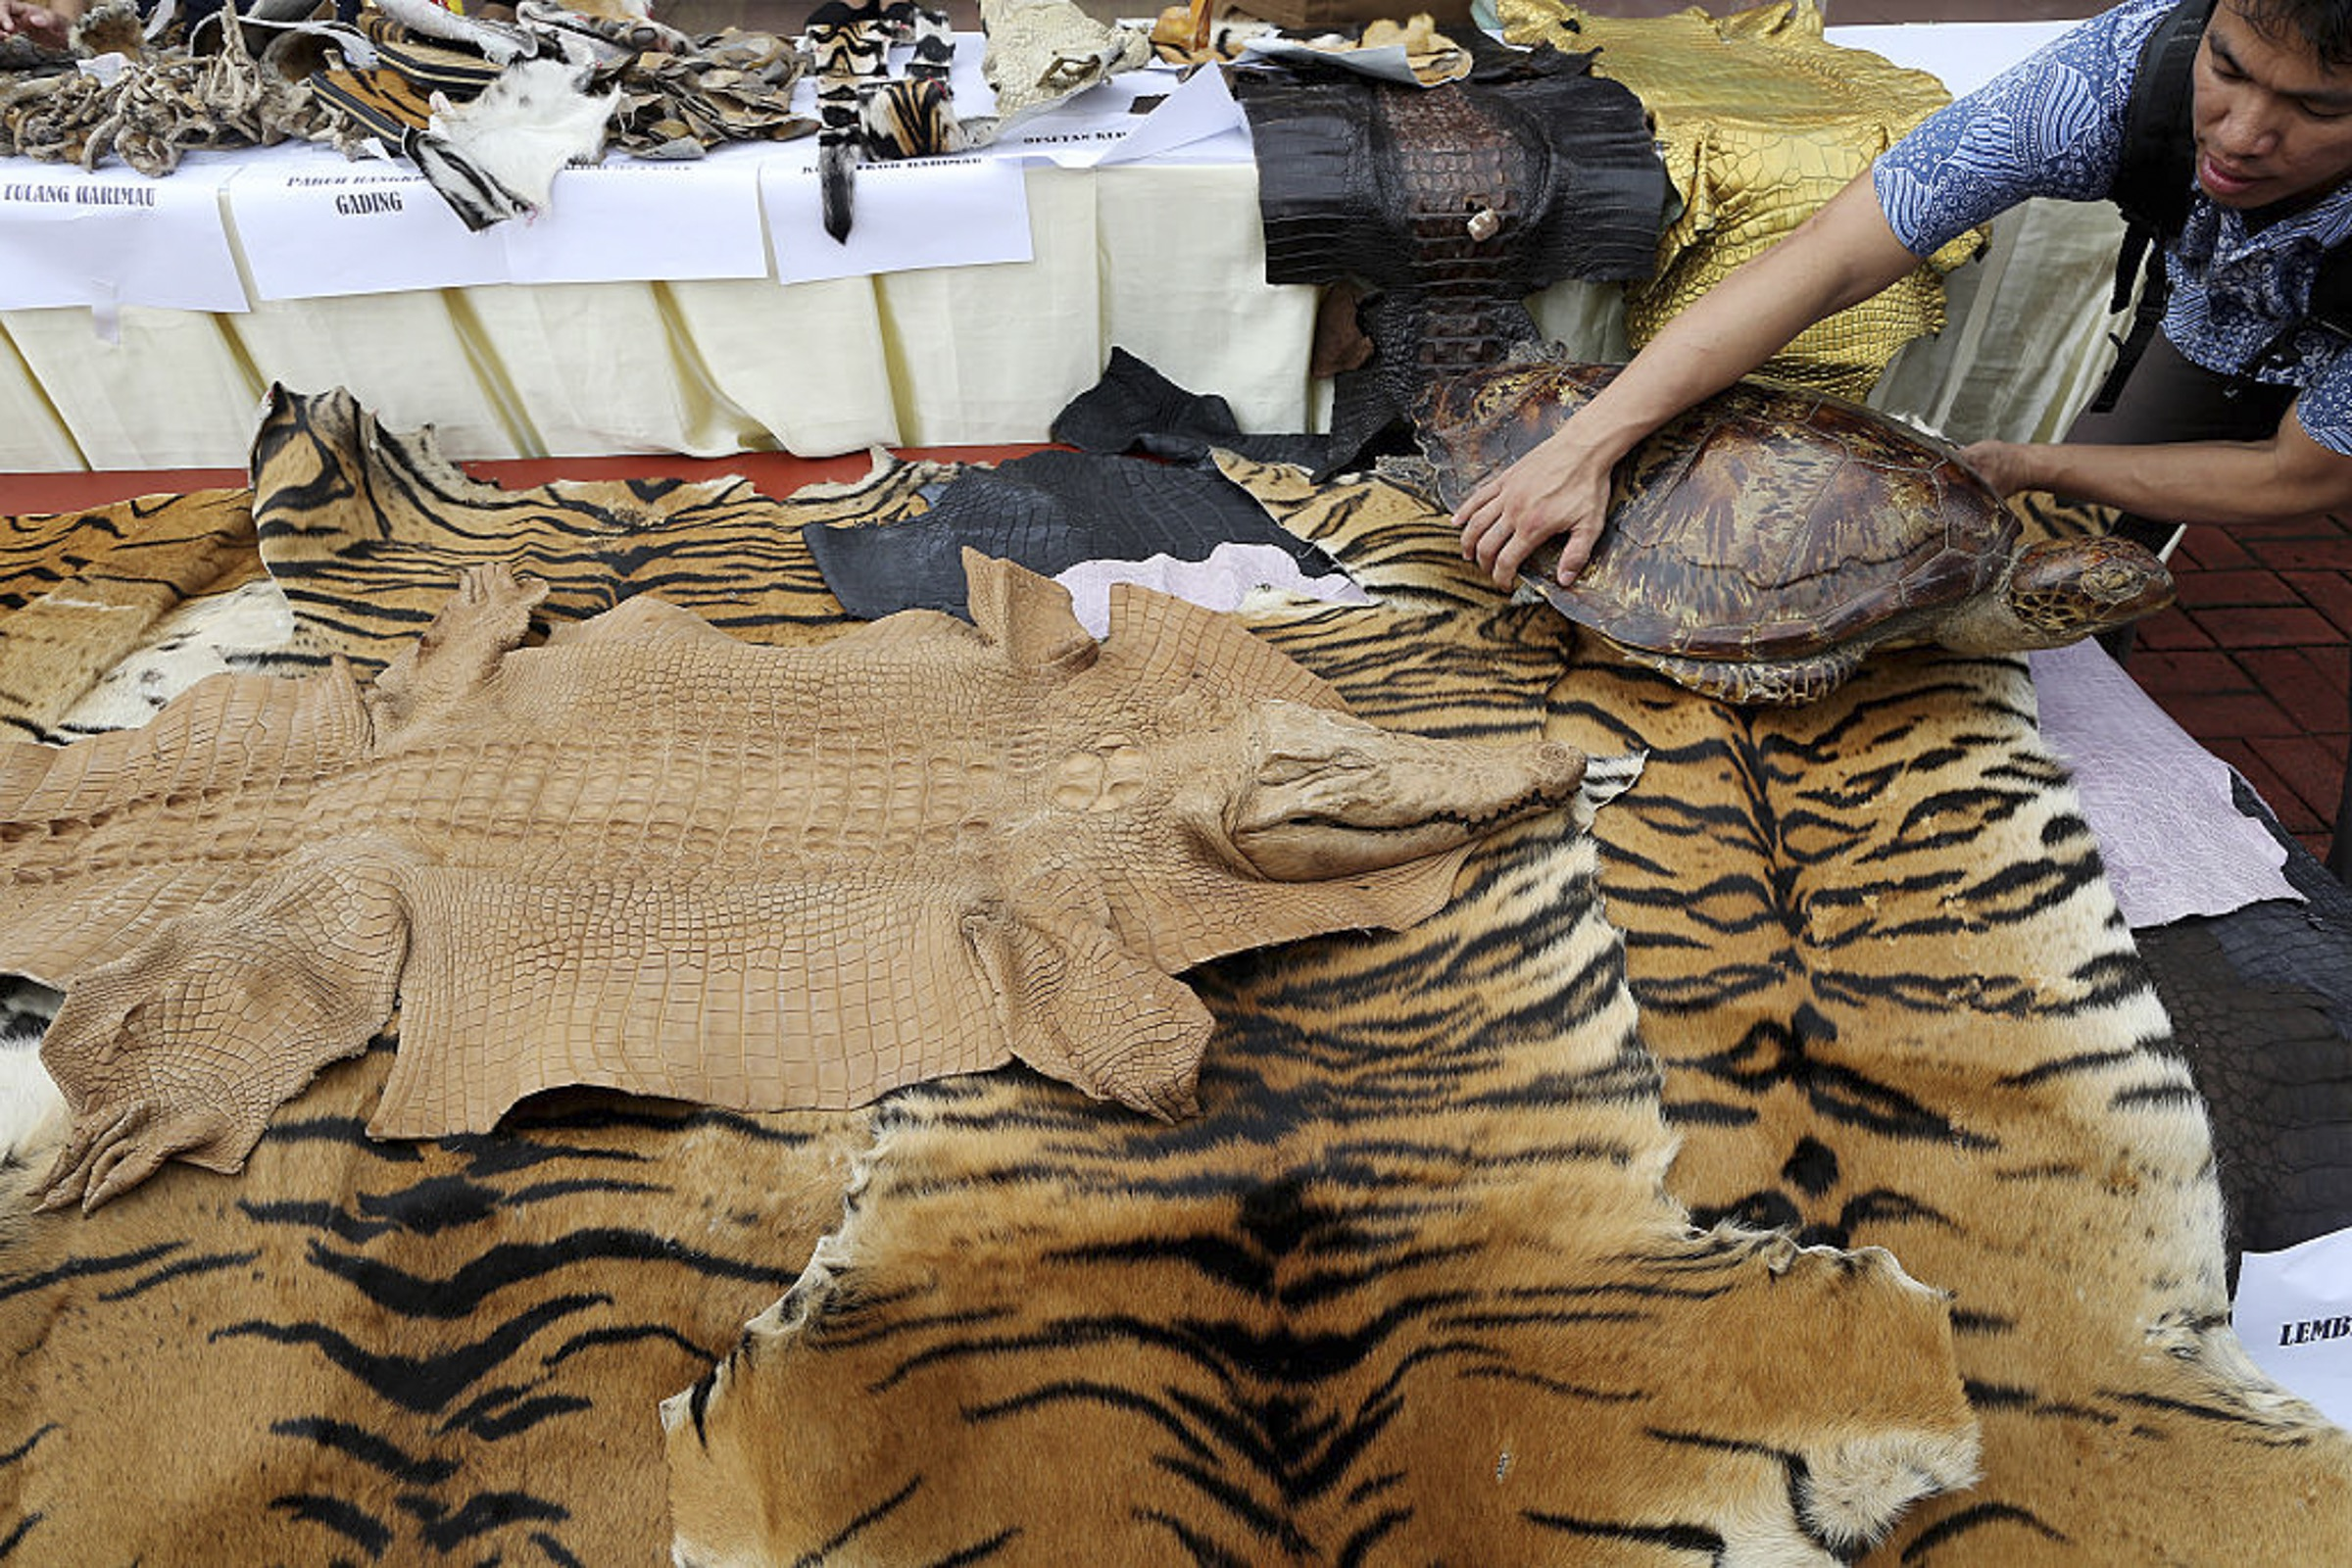 Indonesian police showcase confiscated tiger, crocodile, and turtle skins and carcasses before burning them at the National Police Headquarters in Jakarta in 2016, in an effort to discourage wildlife smuggling. Photograph by Jefta Images / Barcroft Media / Barcroft Media via Getty Images